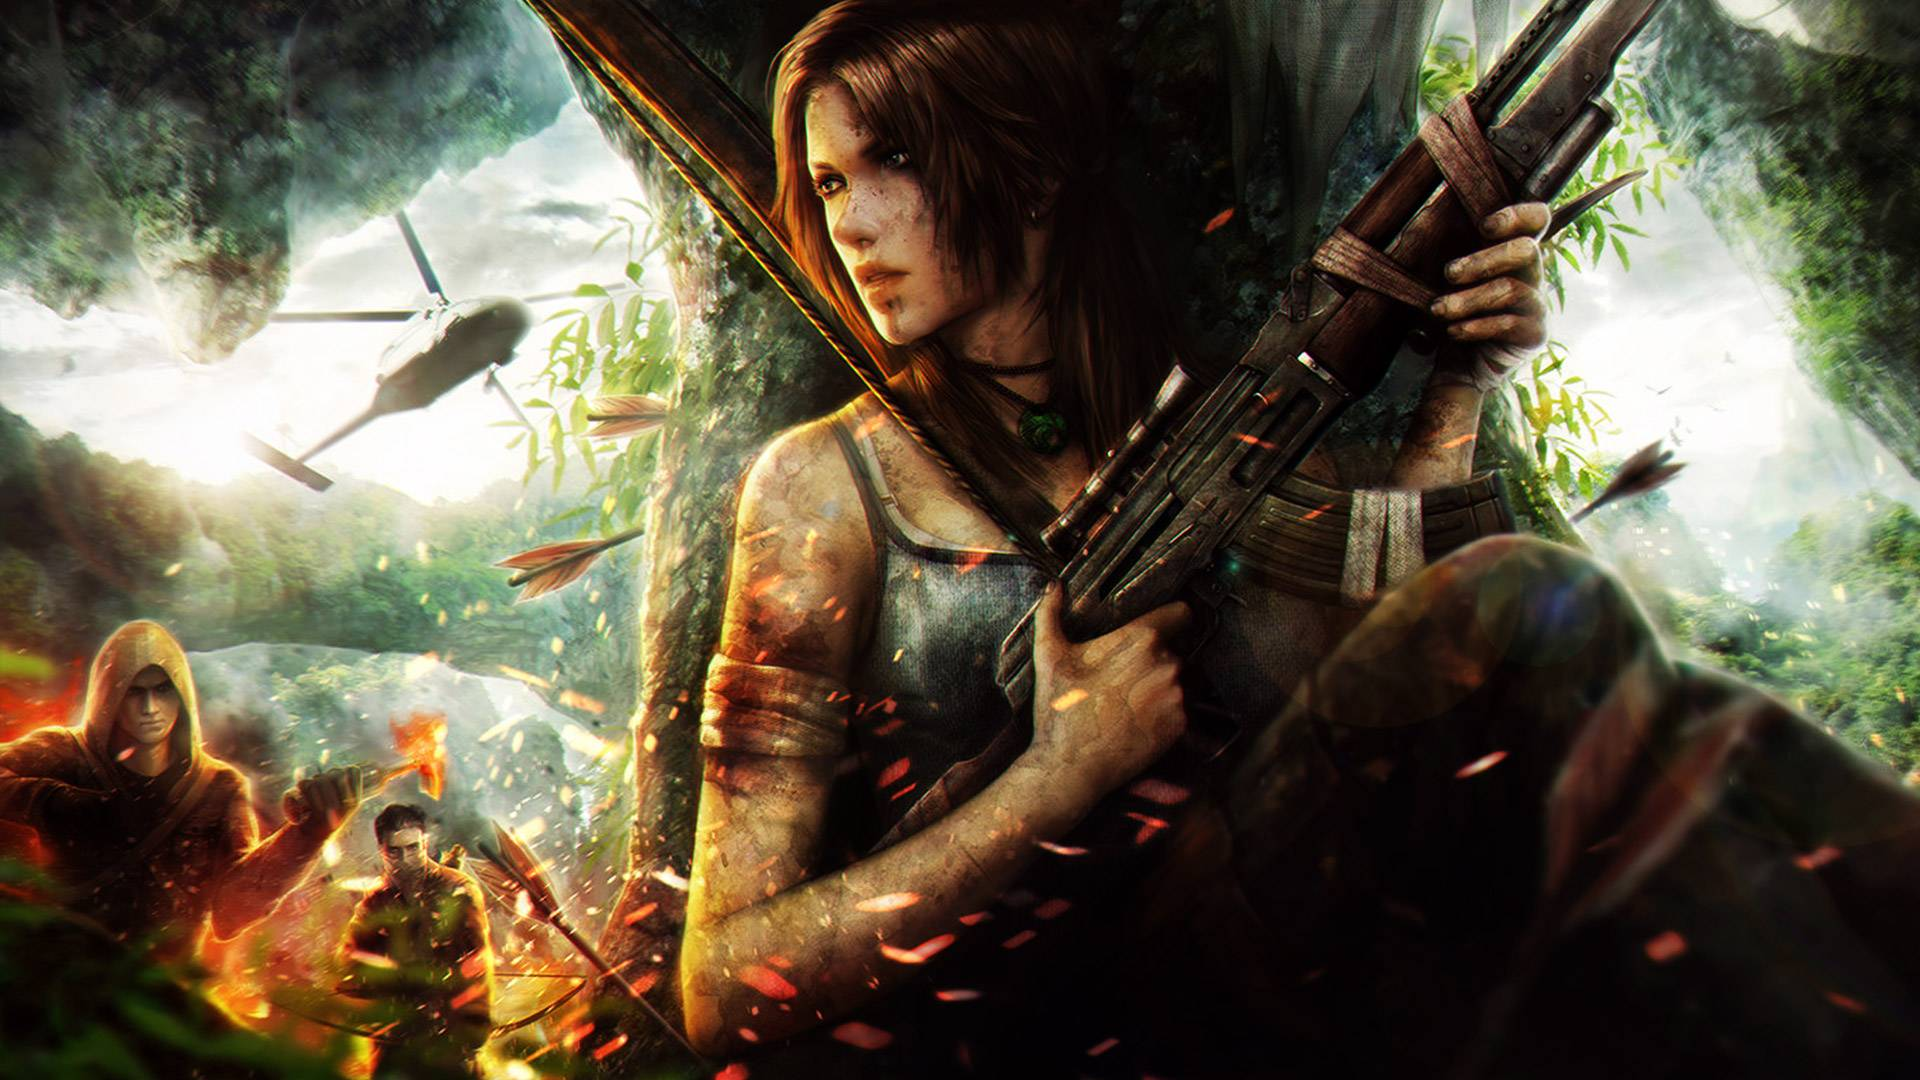 Report this Image? favorite it? enlarge^ 1920x1080 518036 KB. Tomb Raider Fan art 3